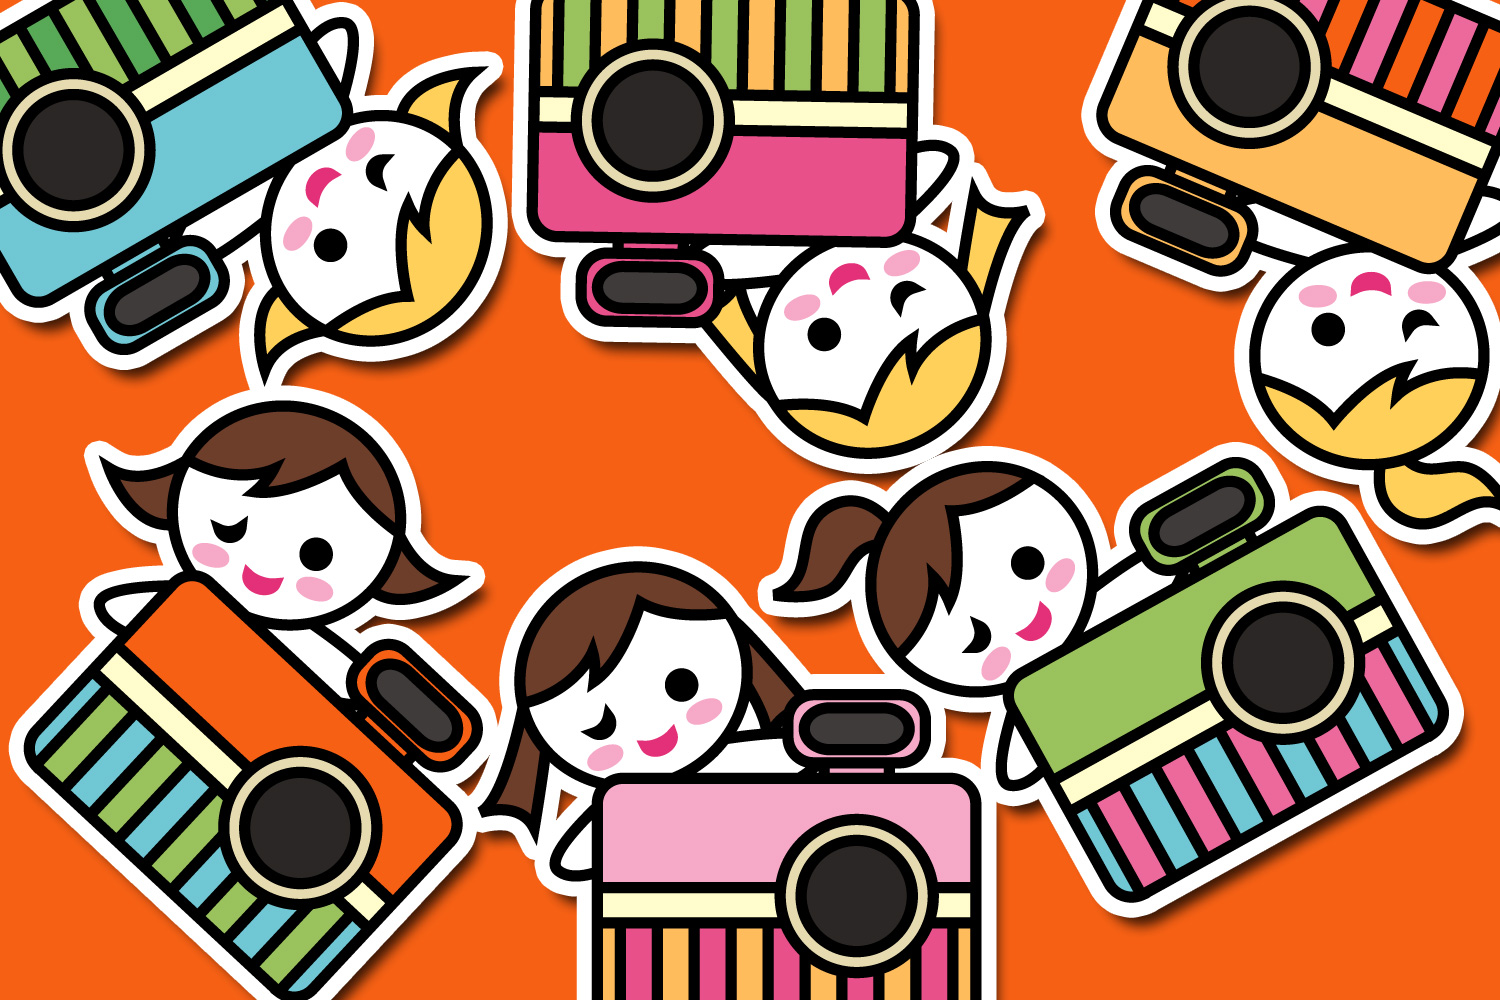 Hobby illustrations bundle - planner sticker graphics example image 14